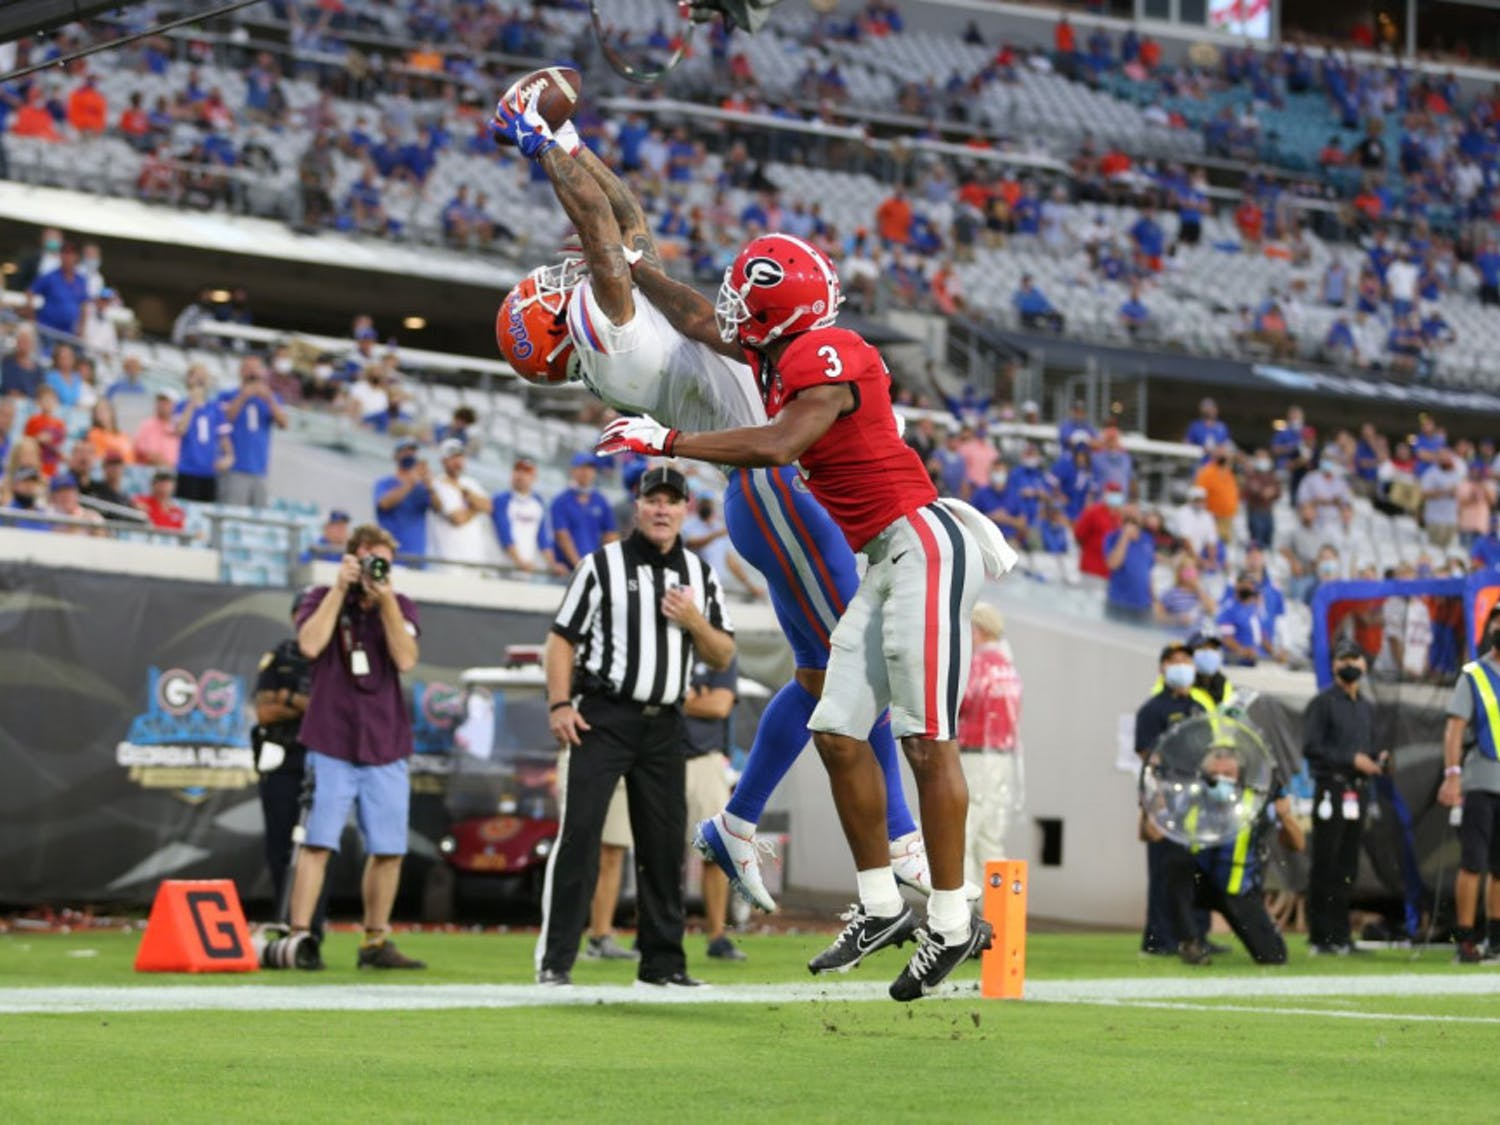 Wide receiver Trevon Grimes stretches to catch the football ball thrown by Gators quarterback Kyle Trask and score a touchdown for Florida against Georgia at TIAA Bank Field on Nov. 7, 2020.